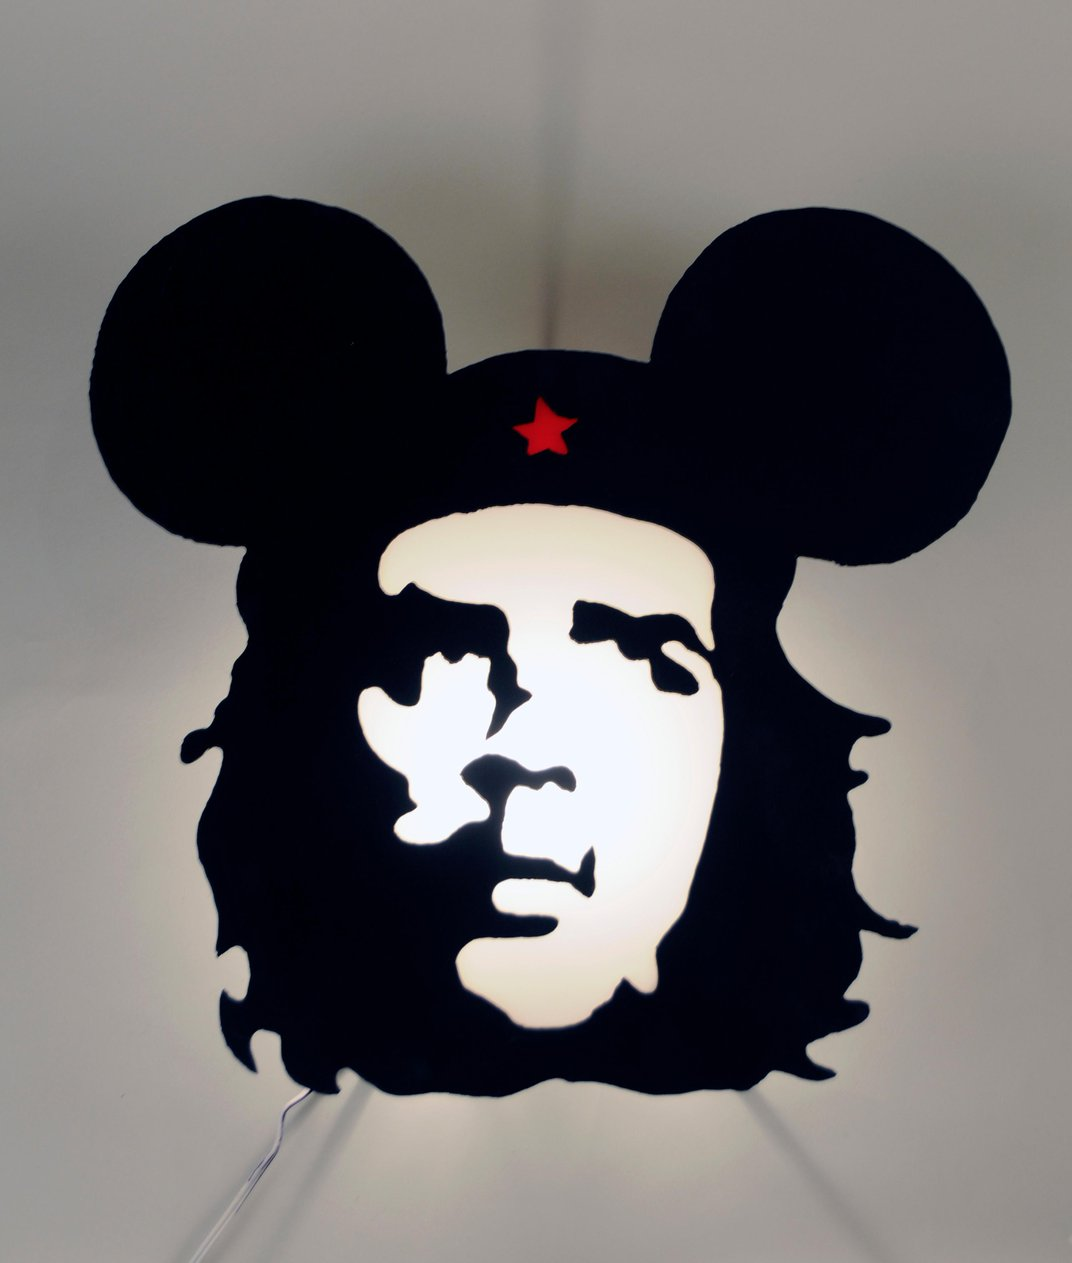 The Story Behind Che's Iconic Photo